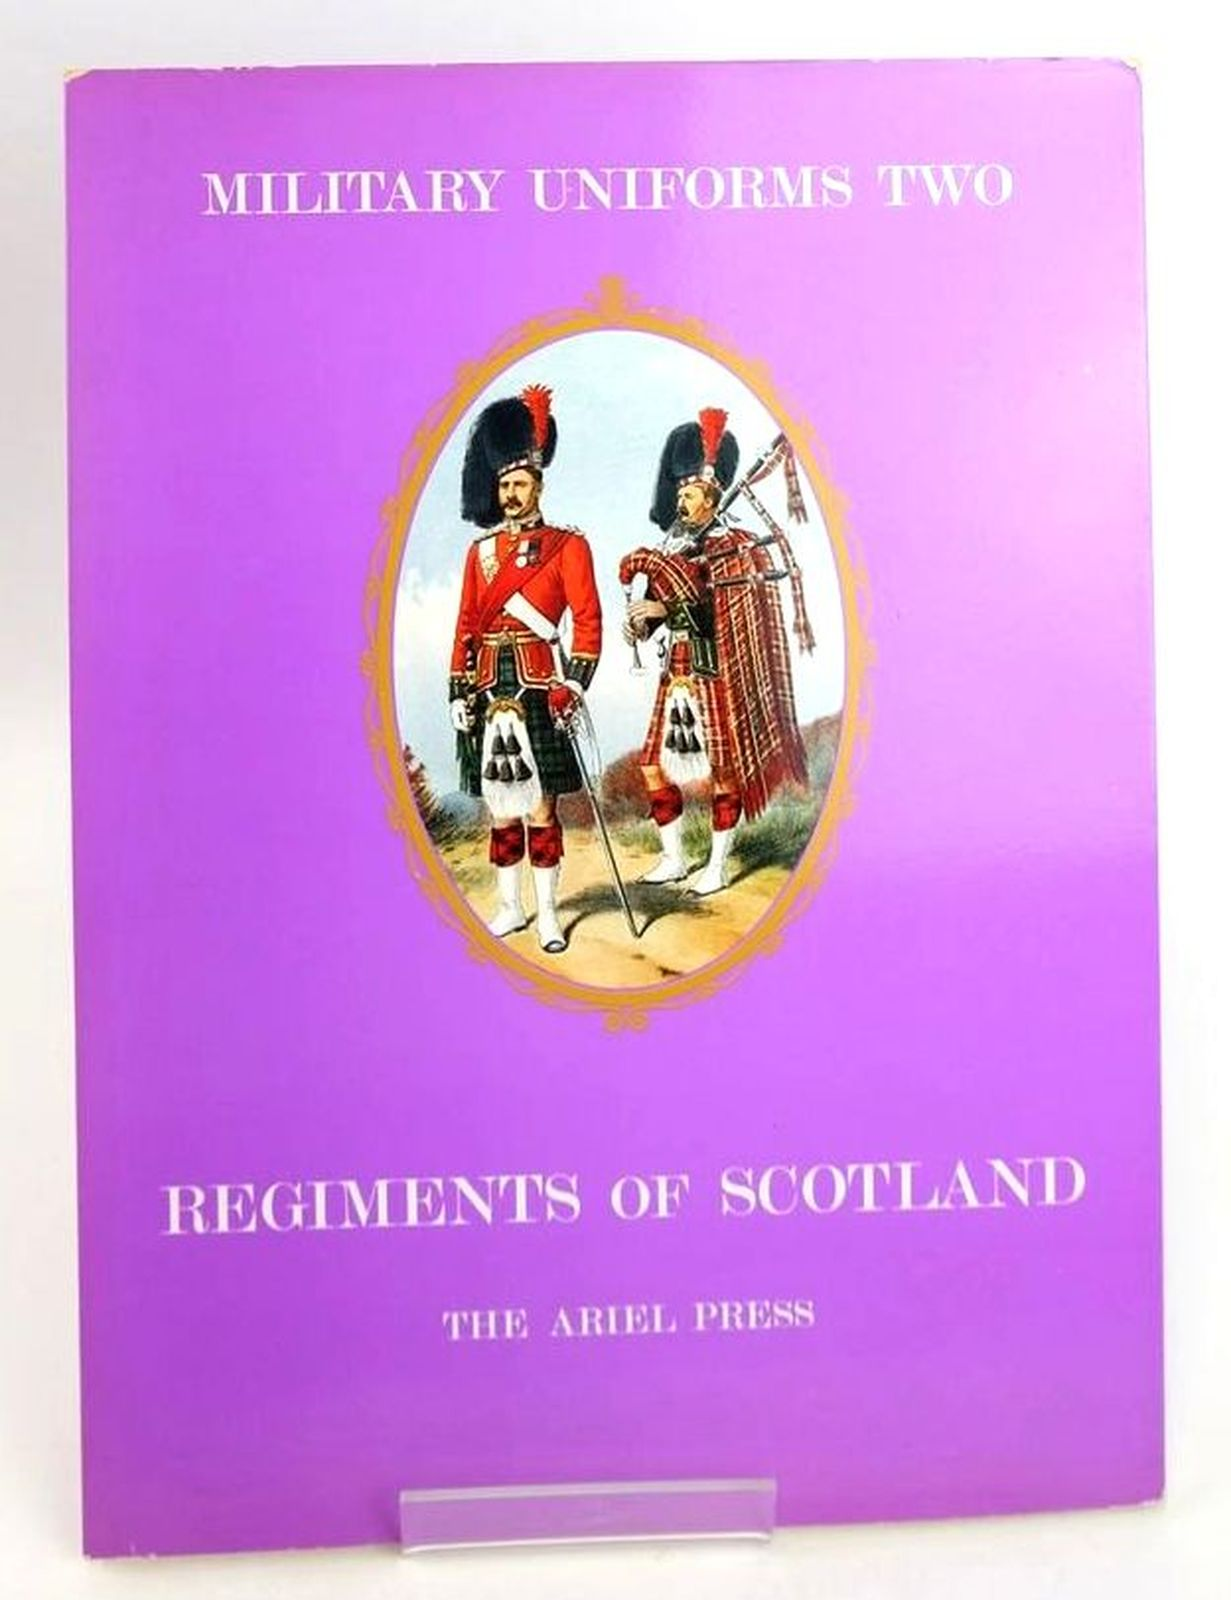 Photo of MILITARY UNIFORMS II: REGIMENTS OF SCOTLAND written by Carman, W.Y. illustrated by Simkin, Richard published by The Ariel Press (STOCK CODE: 1819989)  for sale by Stella & Rose's Books